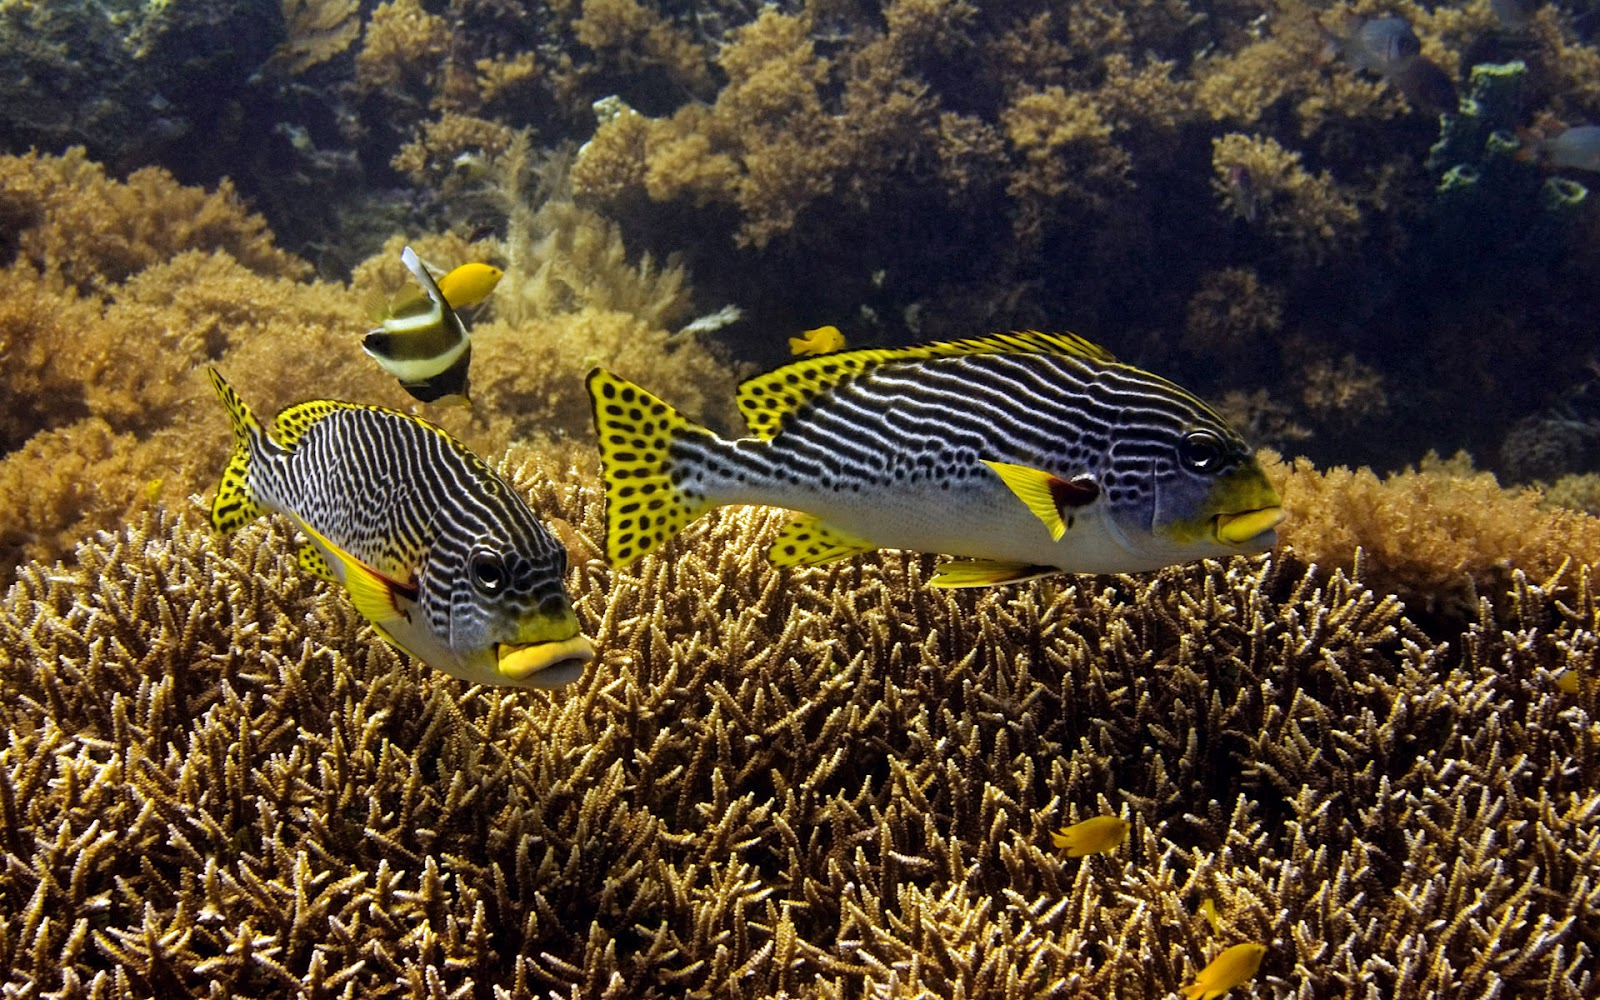 Beautiful marine life wallpaper with black white yellow fish and many